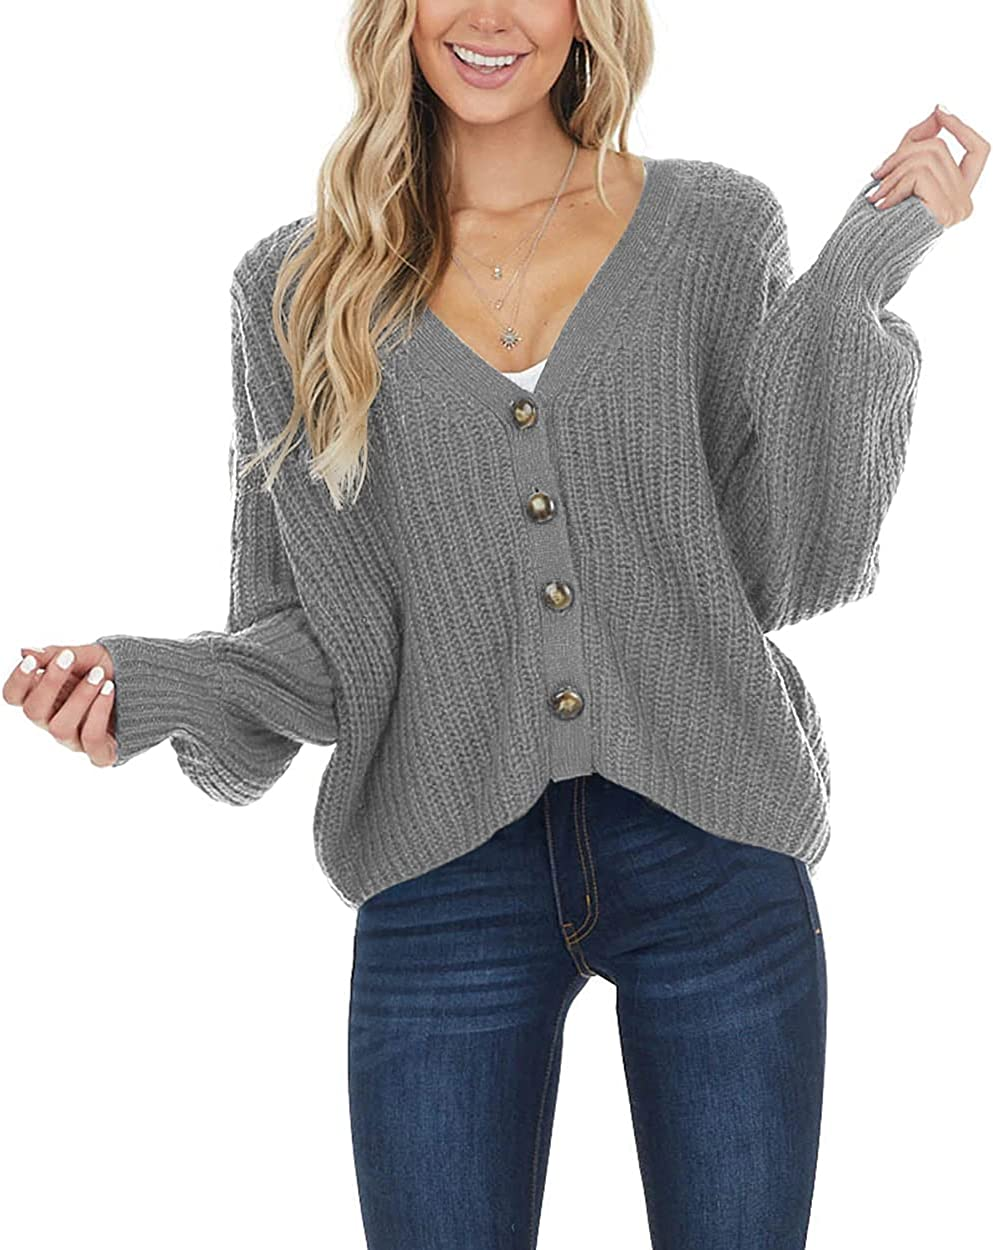 LAMISSCHE Womens Long Max 72% OFF Sleeve Button Down Sweater Cardigan low-pricing Casual